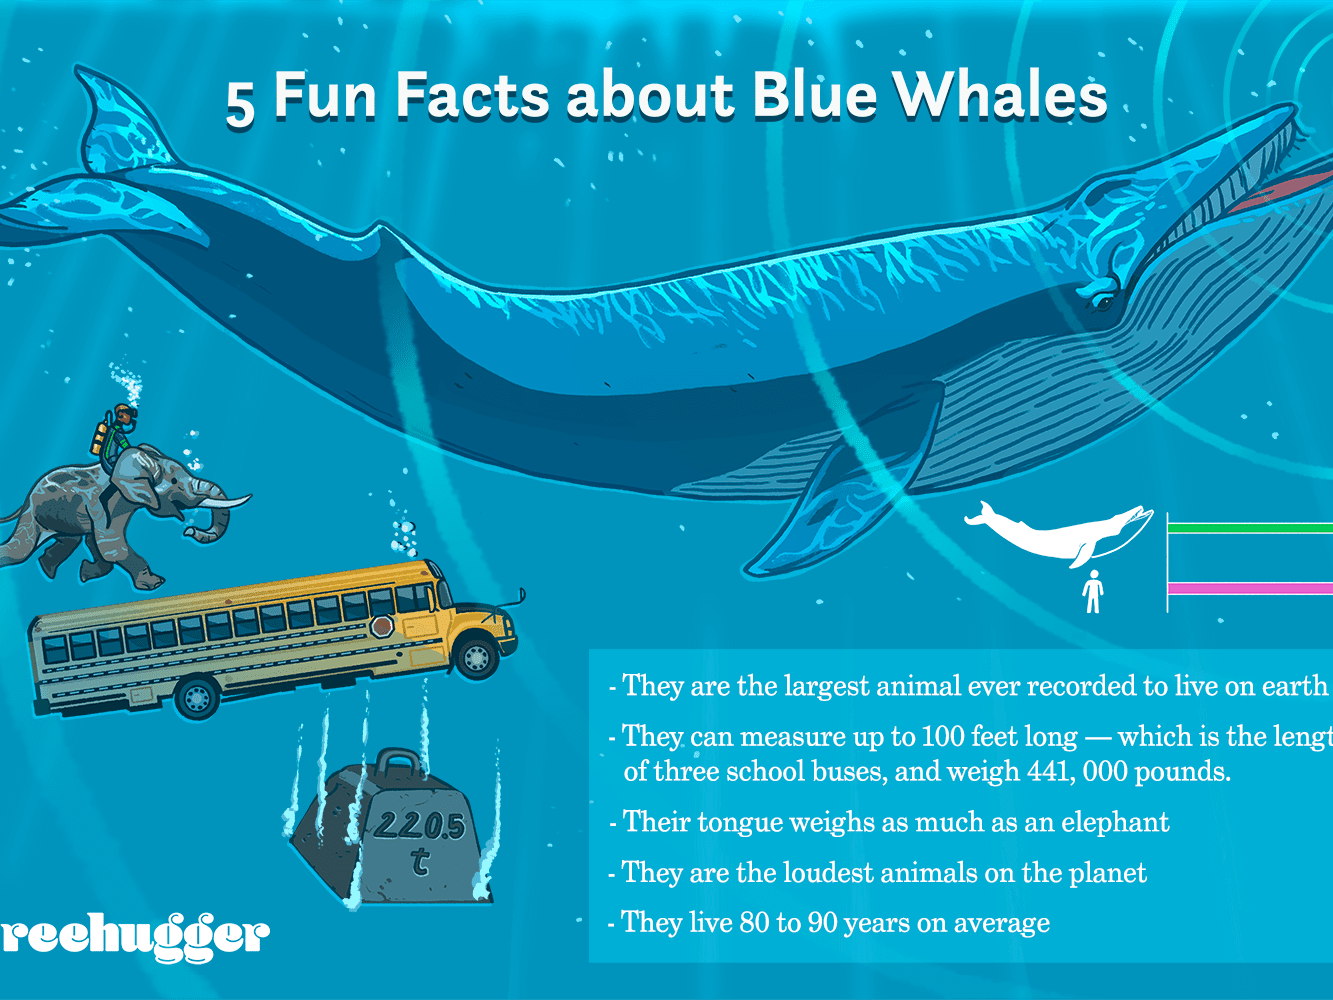 11 Facts About Blue Whales, the Largest Animals Ever on Earth